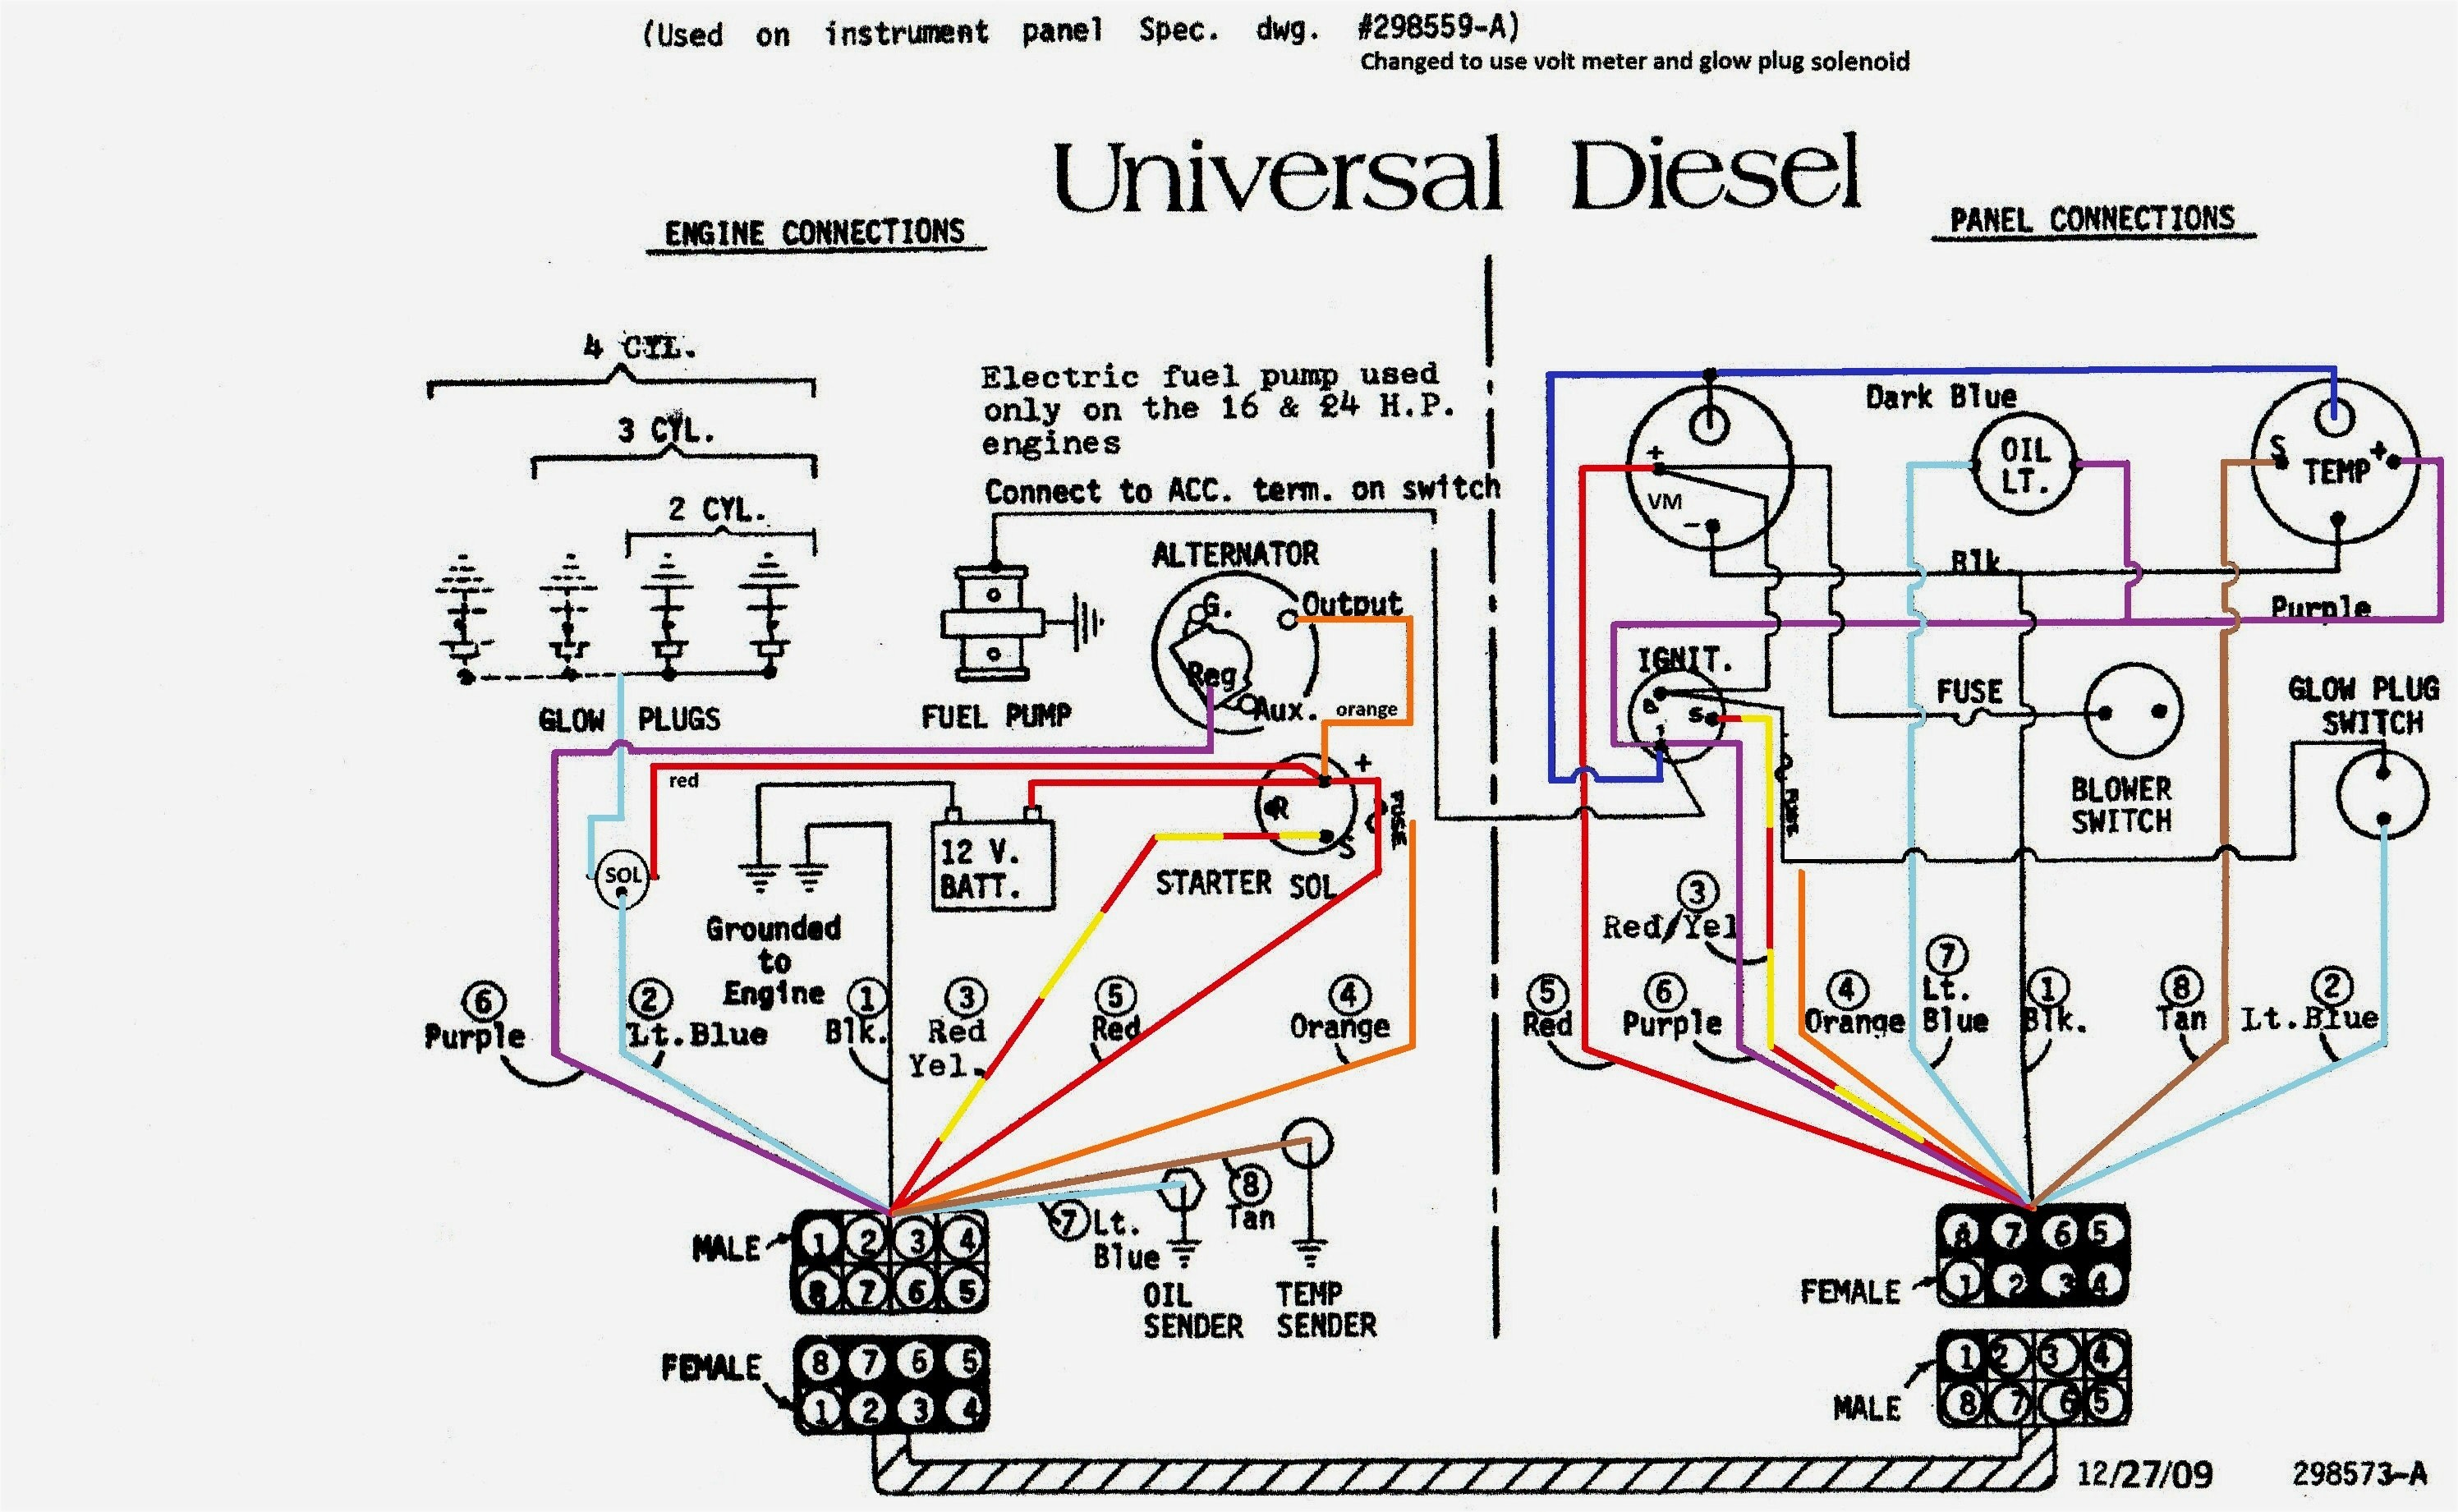 Trailer Lights Wiring Diagram Wire Car Diagrams Prong Plug New Light 4 Wires Electrical Circuit Dimension